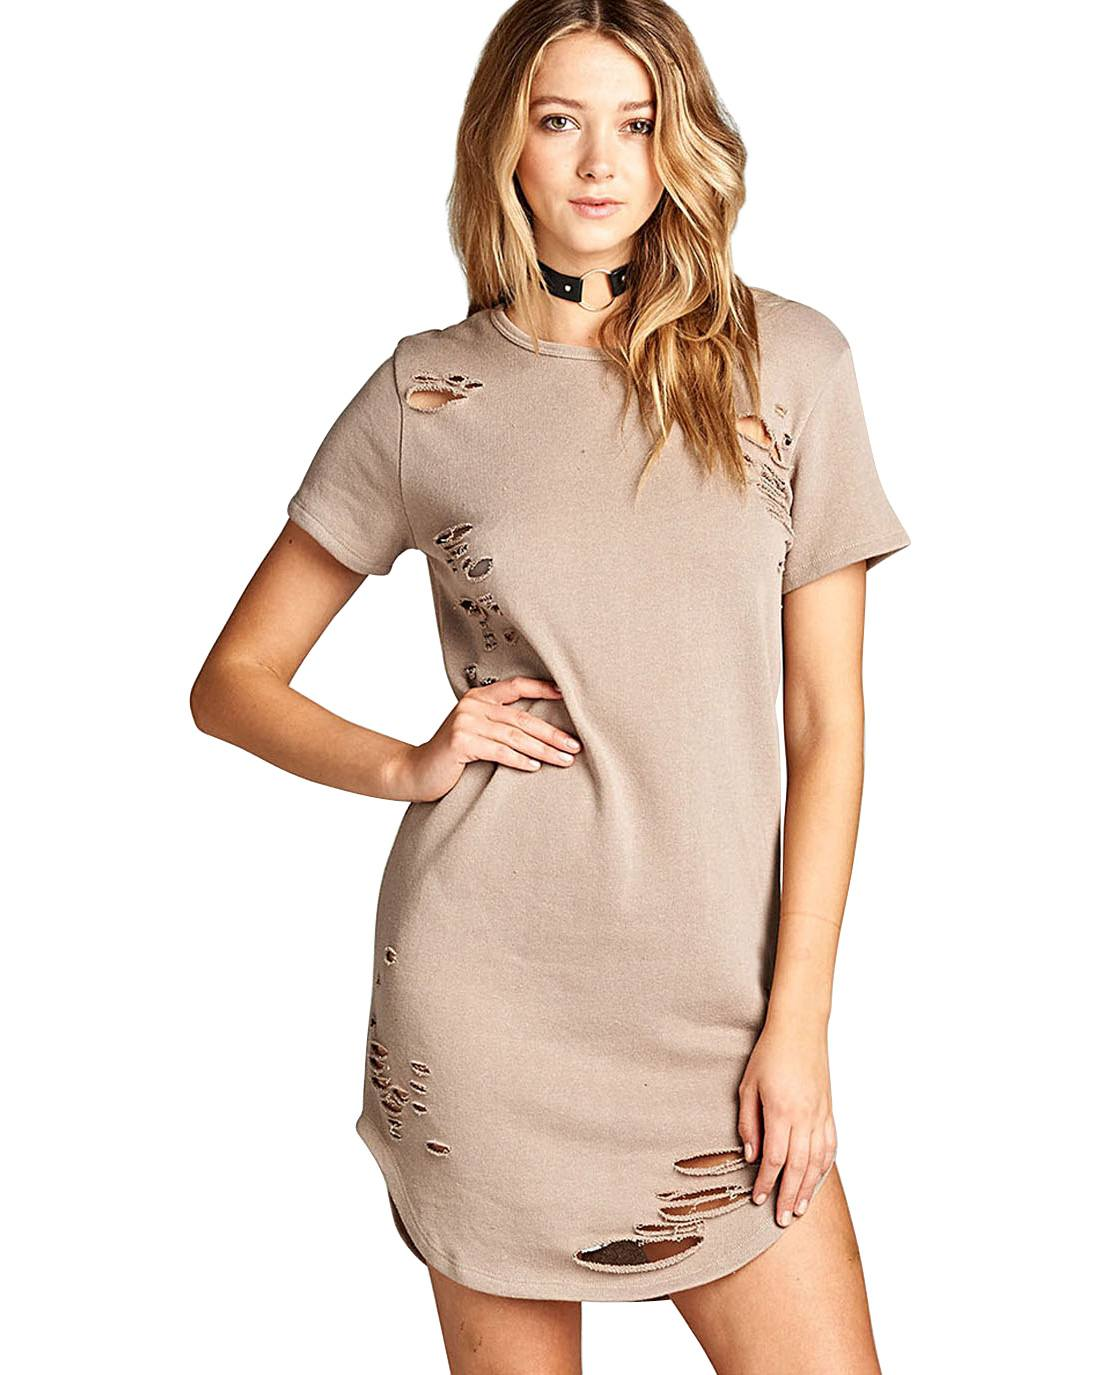 Ladies T shirt dress-S-MY UPSCALE STORE